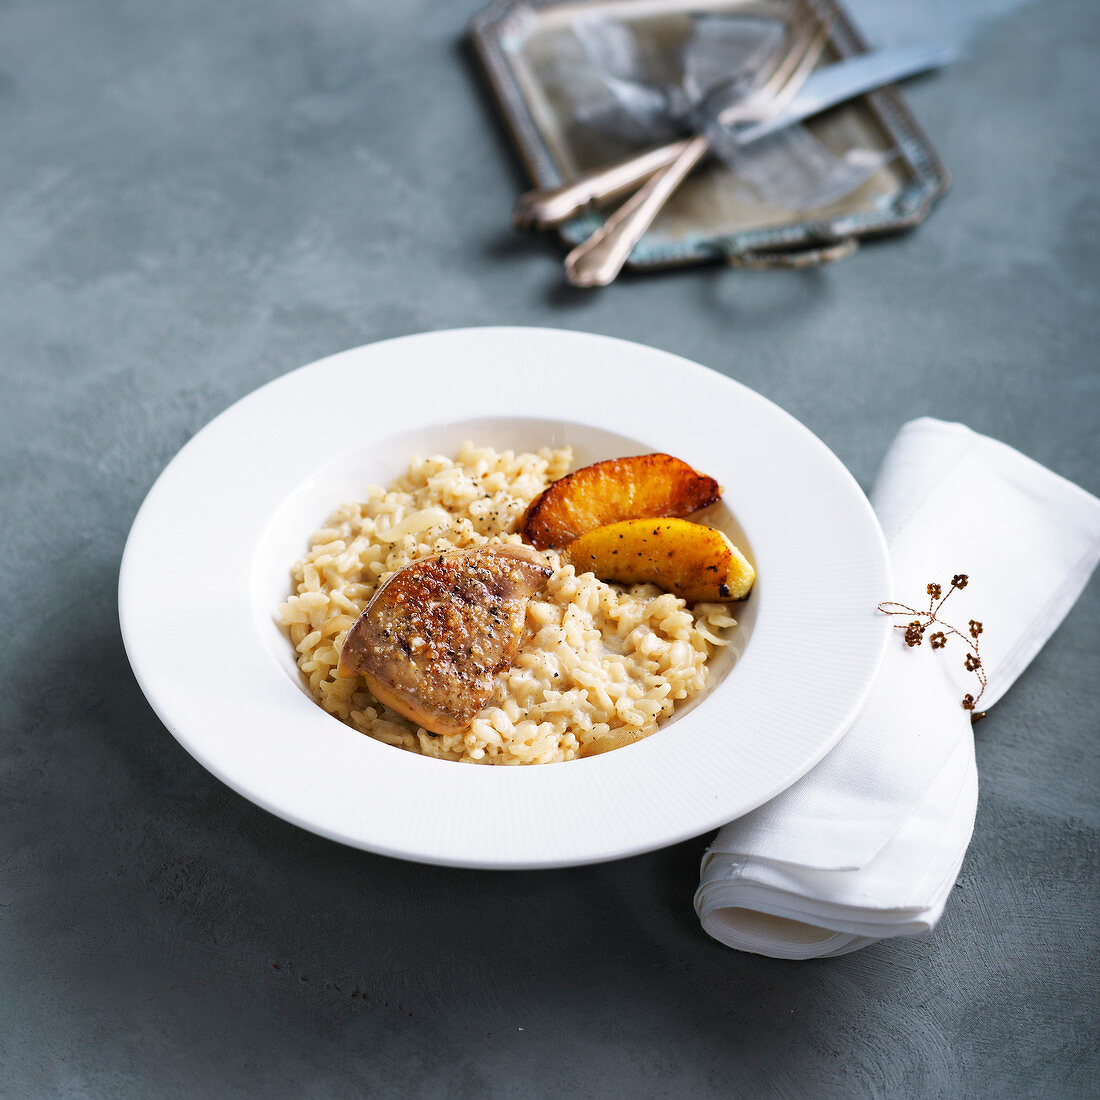 Pan-fried foie gras risotto with roasted apples